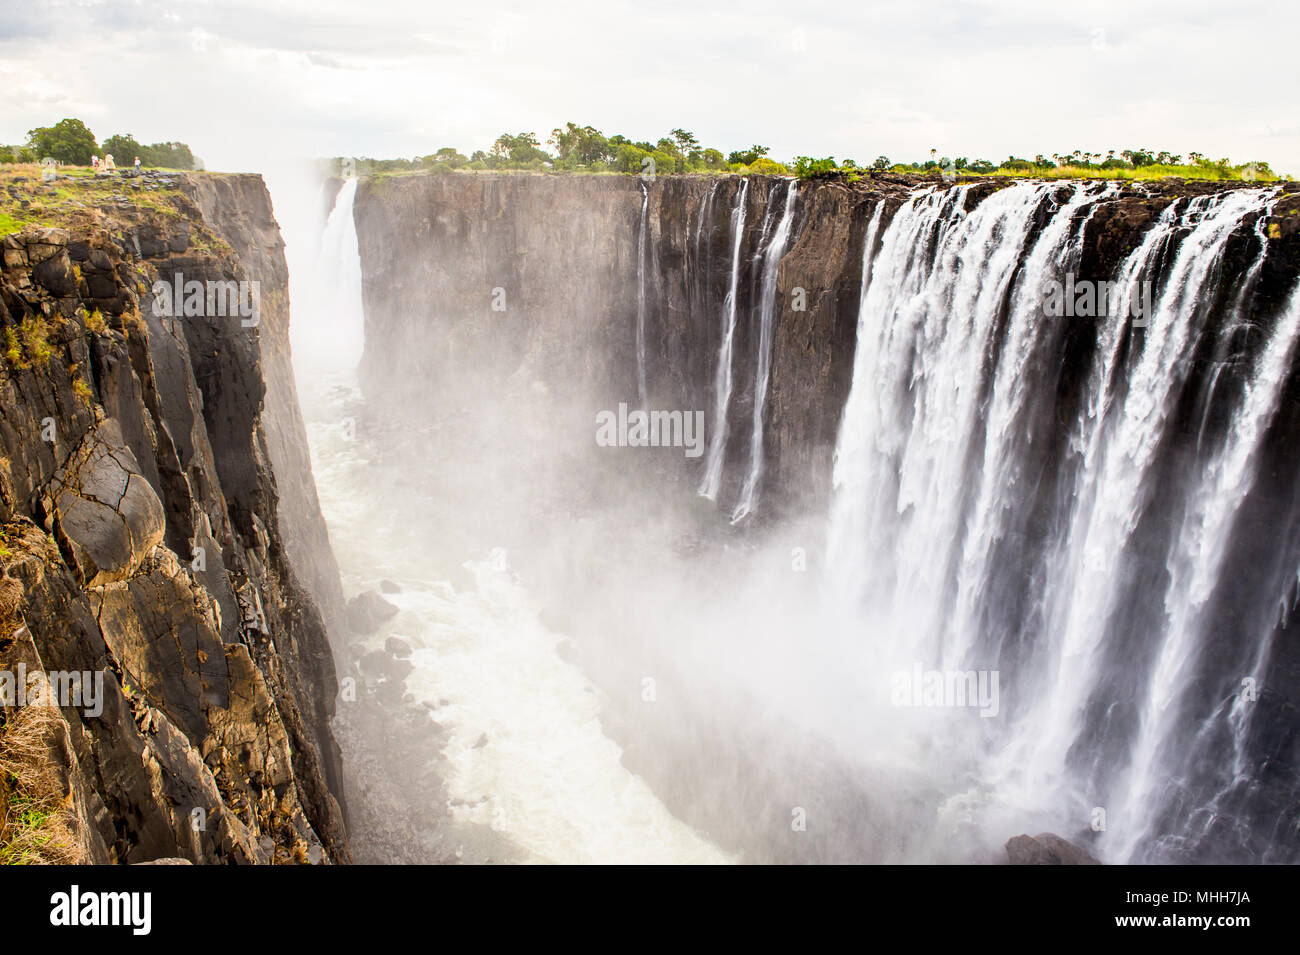 Scenic view of the Victoria Falls, Zambezi River, Zimbabwe and Zambia - Stock Image